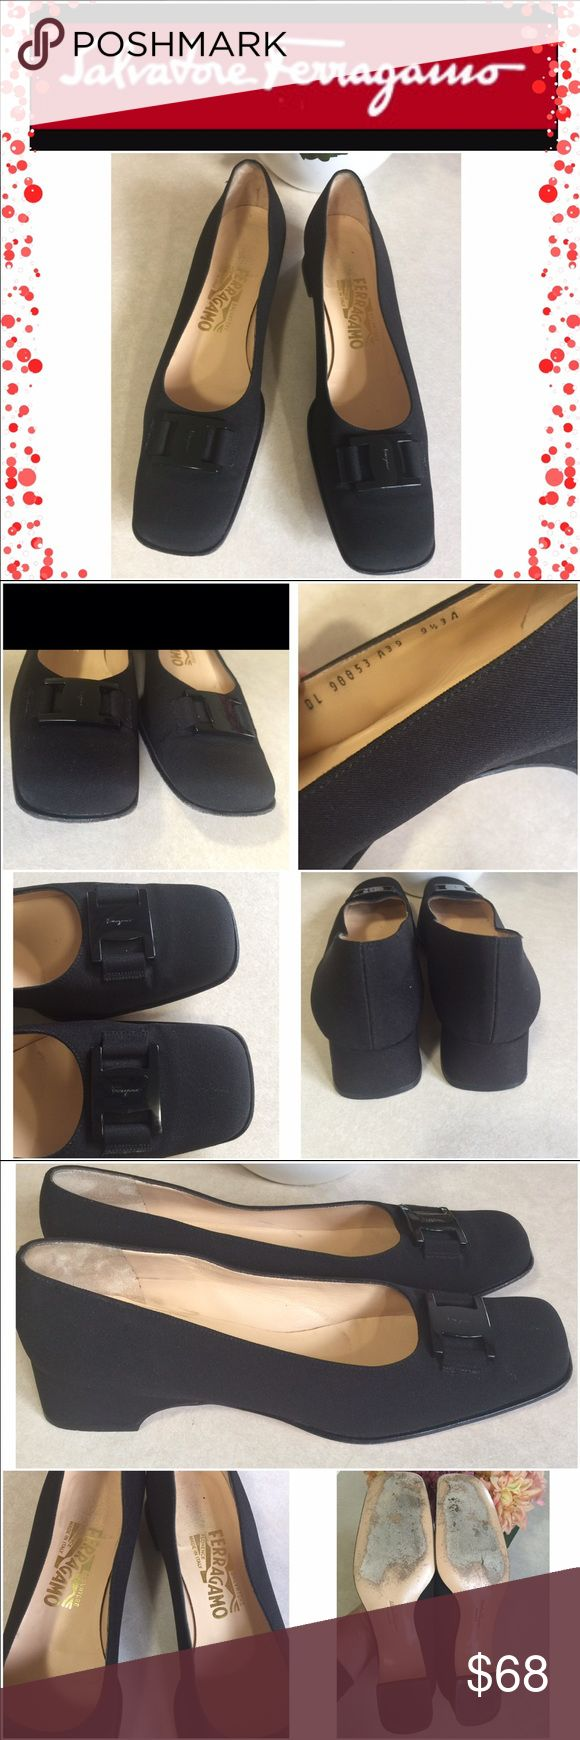 """Salvatore Ferragamo black dress shoes Authentic Salvatore Ferragamo vintage nylon heels black formal shoes. Very good preowned condition. They show wear on the bottom soles and some on insoles and very light wear in the upper parts. Heel 1.5"""" No accessories included Salvatore Ferragamo Shoes Heels"""